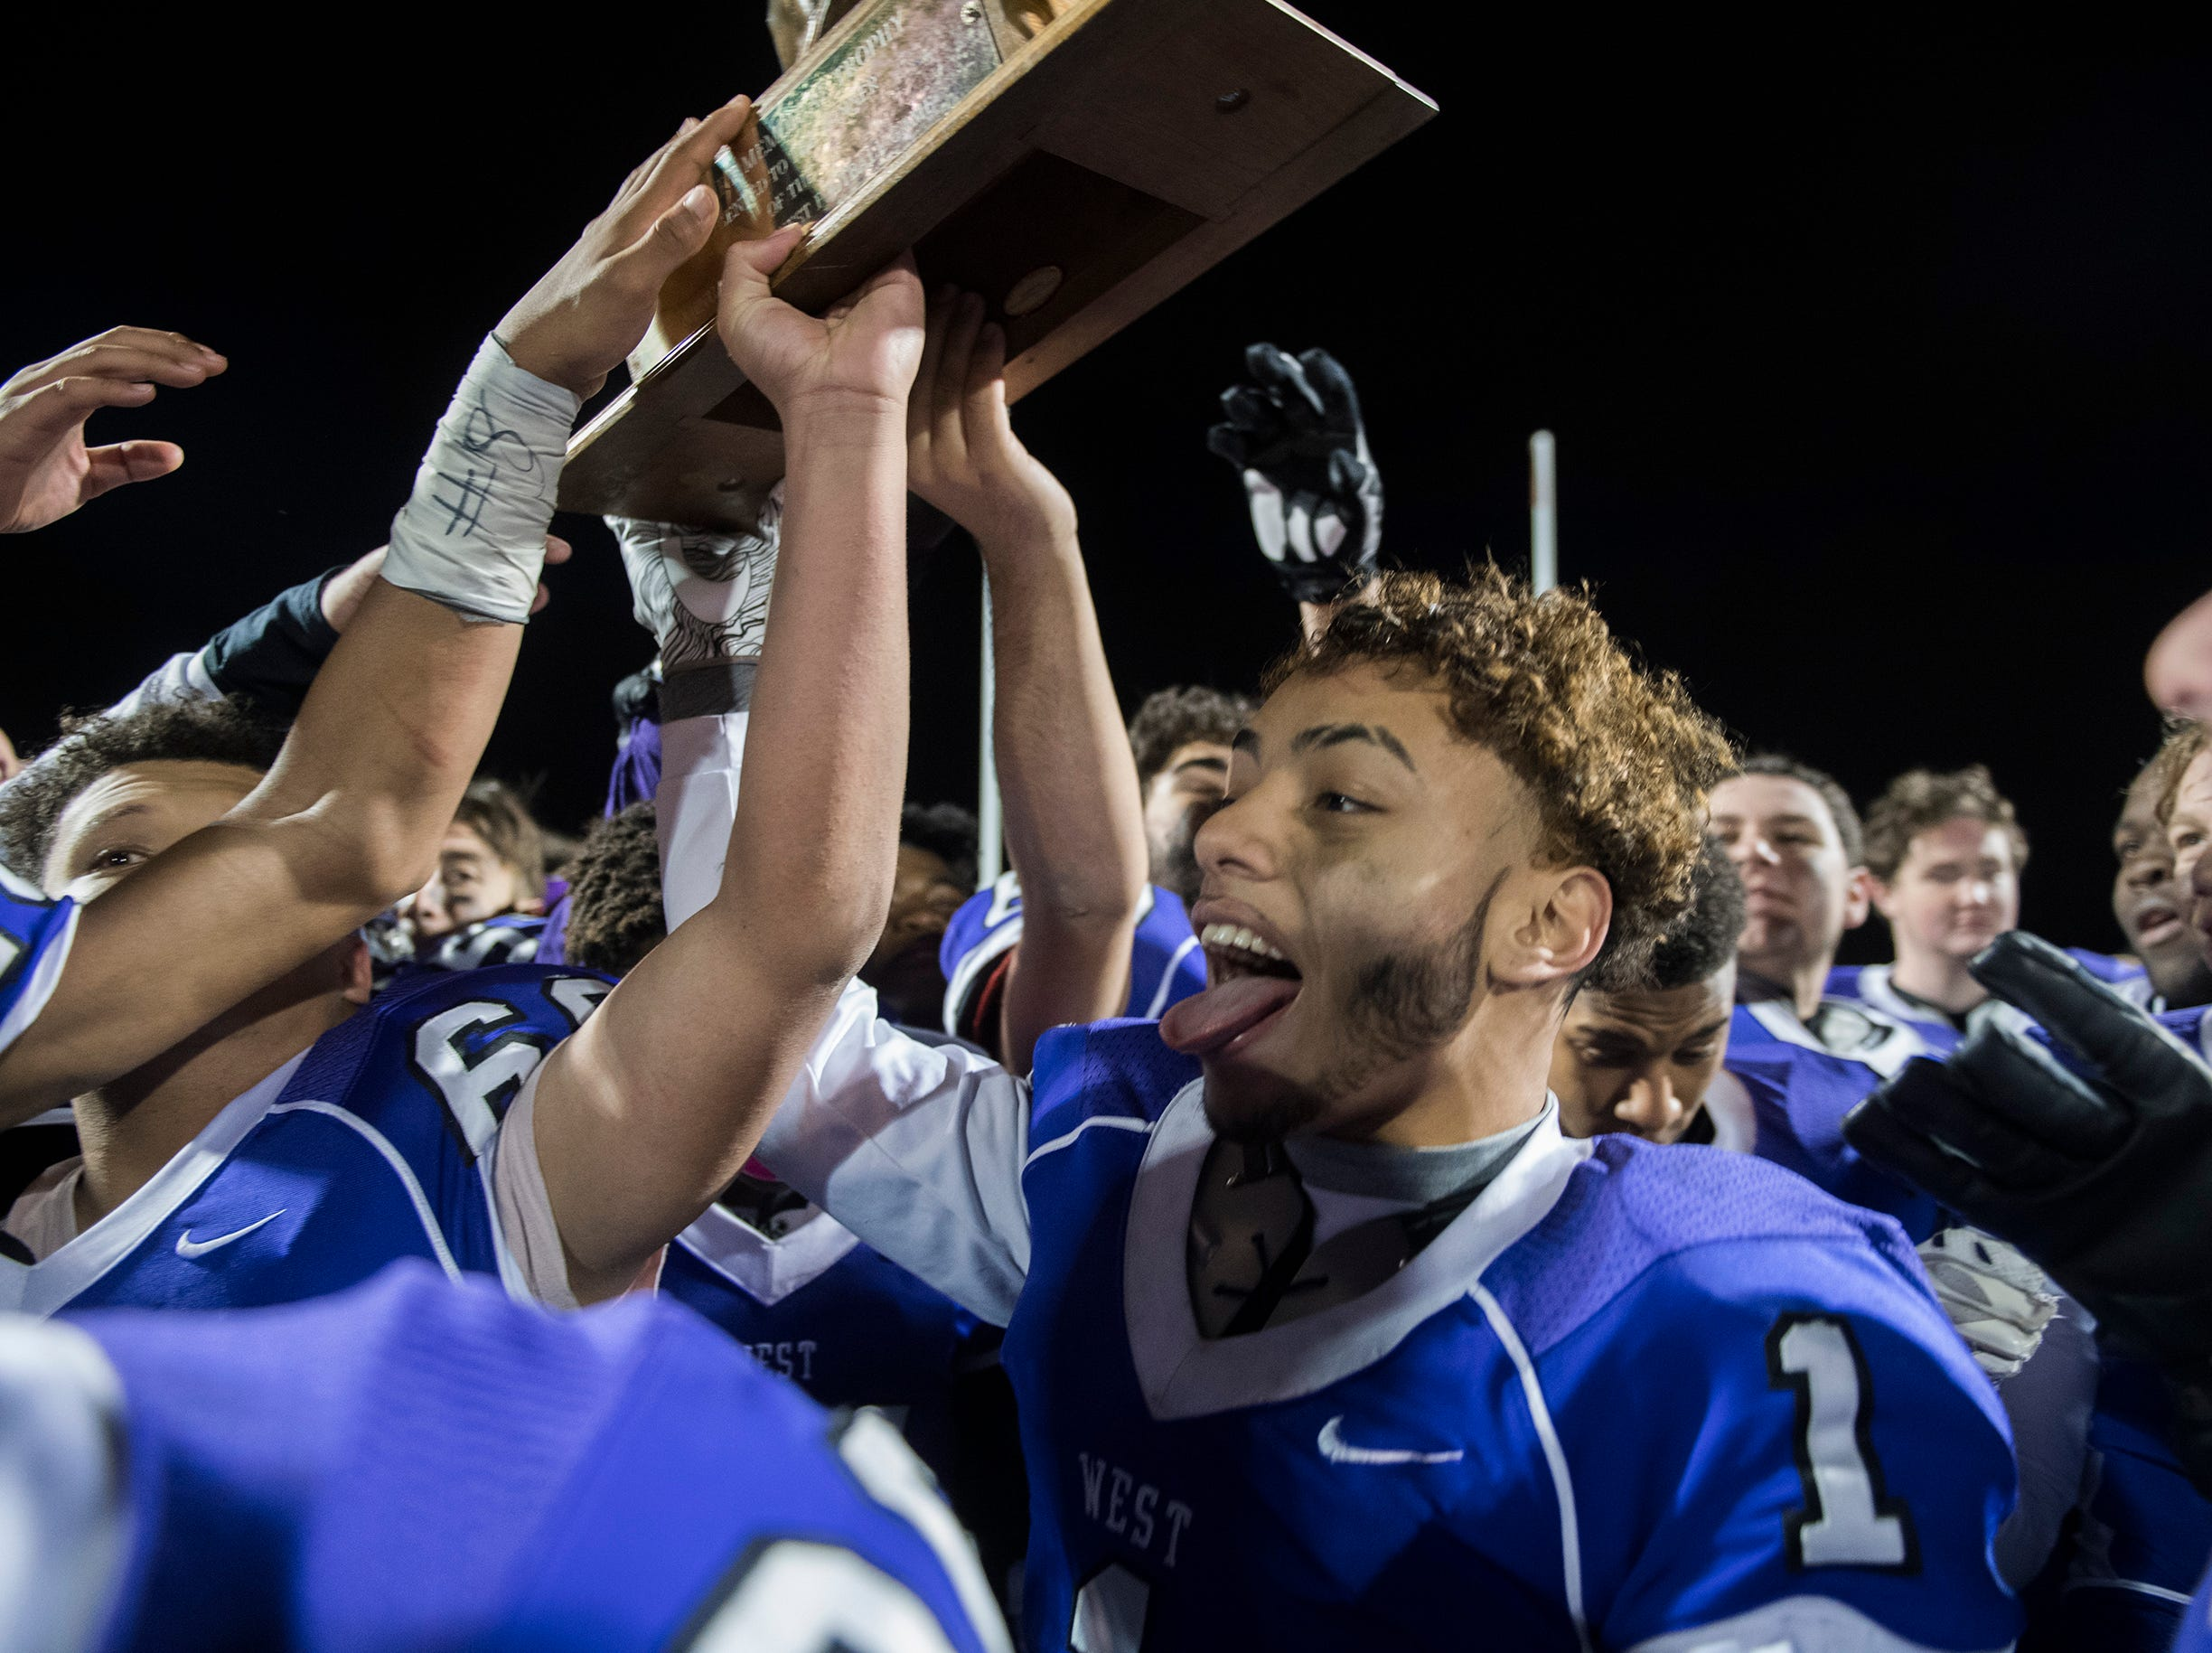 West's Carlos Gomez Jr. (1) raises the Al DiBart trophy following a win in the annual East-West game Wednesday, Nov. 21, 2018 at Cherry Hill West High School in Cherry Hill, N.J. West won 22-7.